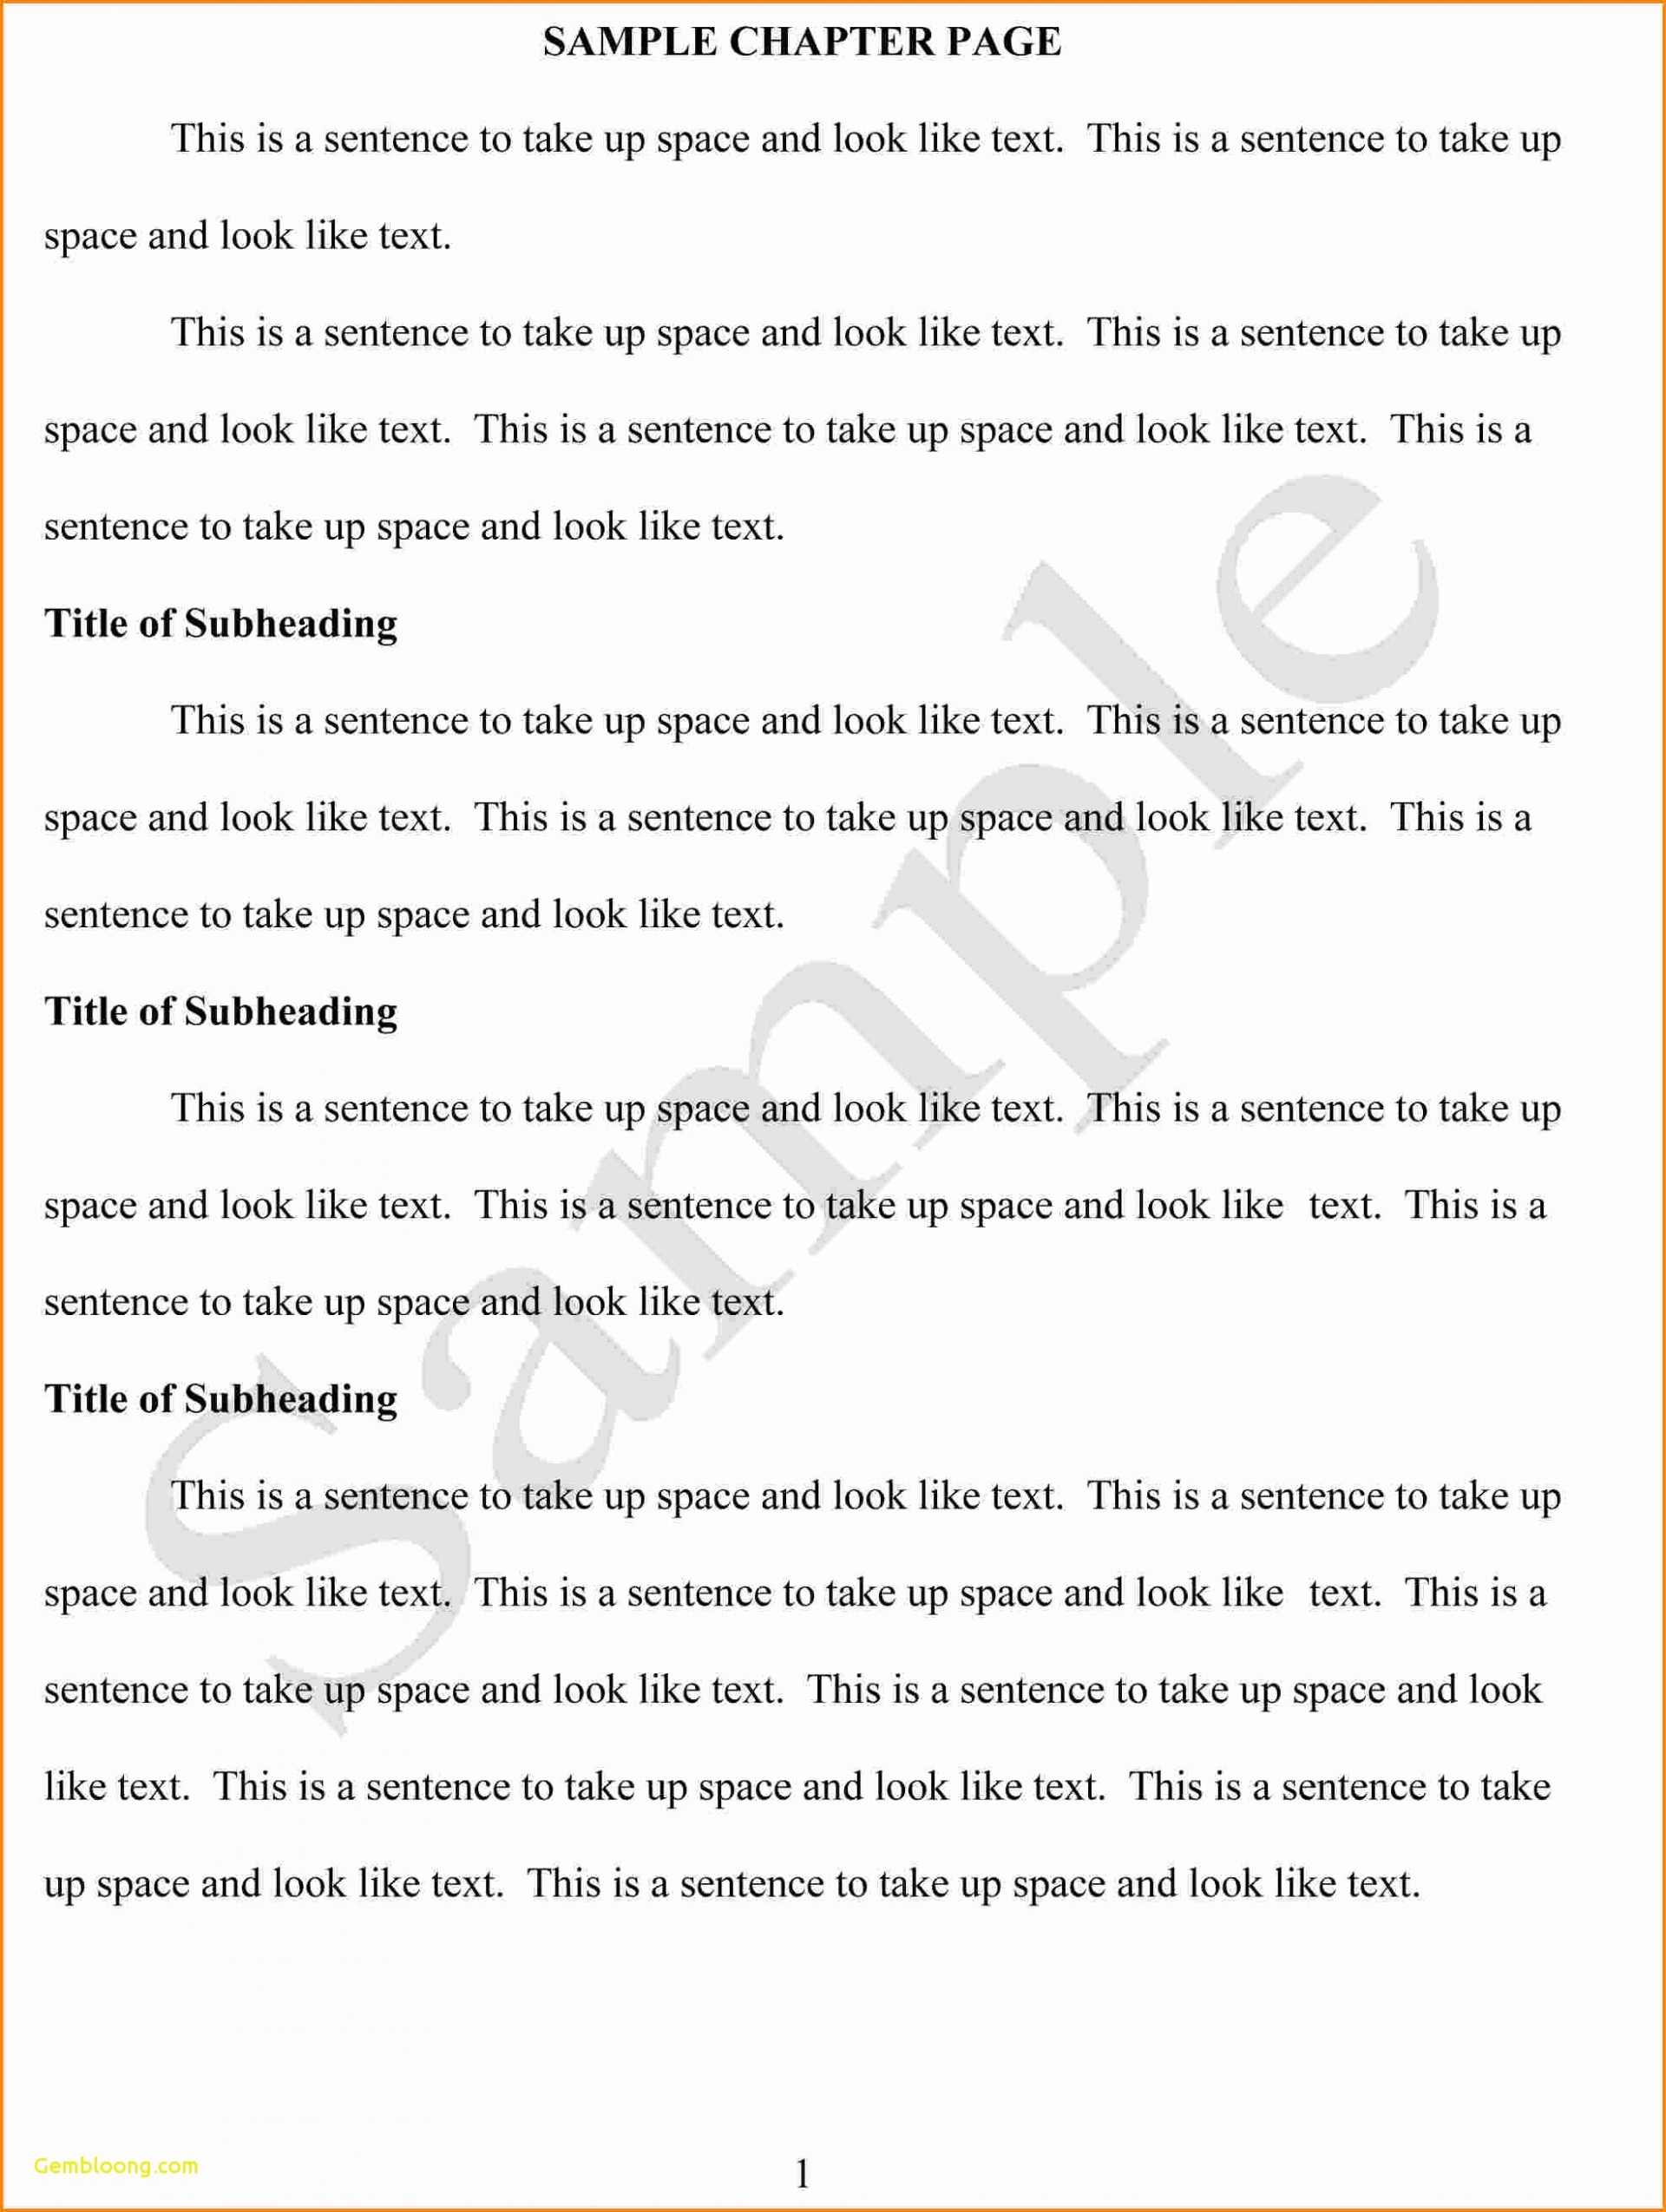 024 Process Paper Essay How To Write An Appendix20n Truancy Of Recycling Outline Example20 Research Appendices In Stupendous Sample Appendix Meaning Example 1920